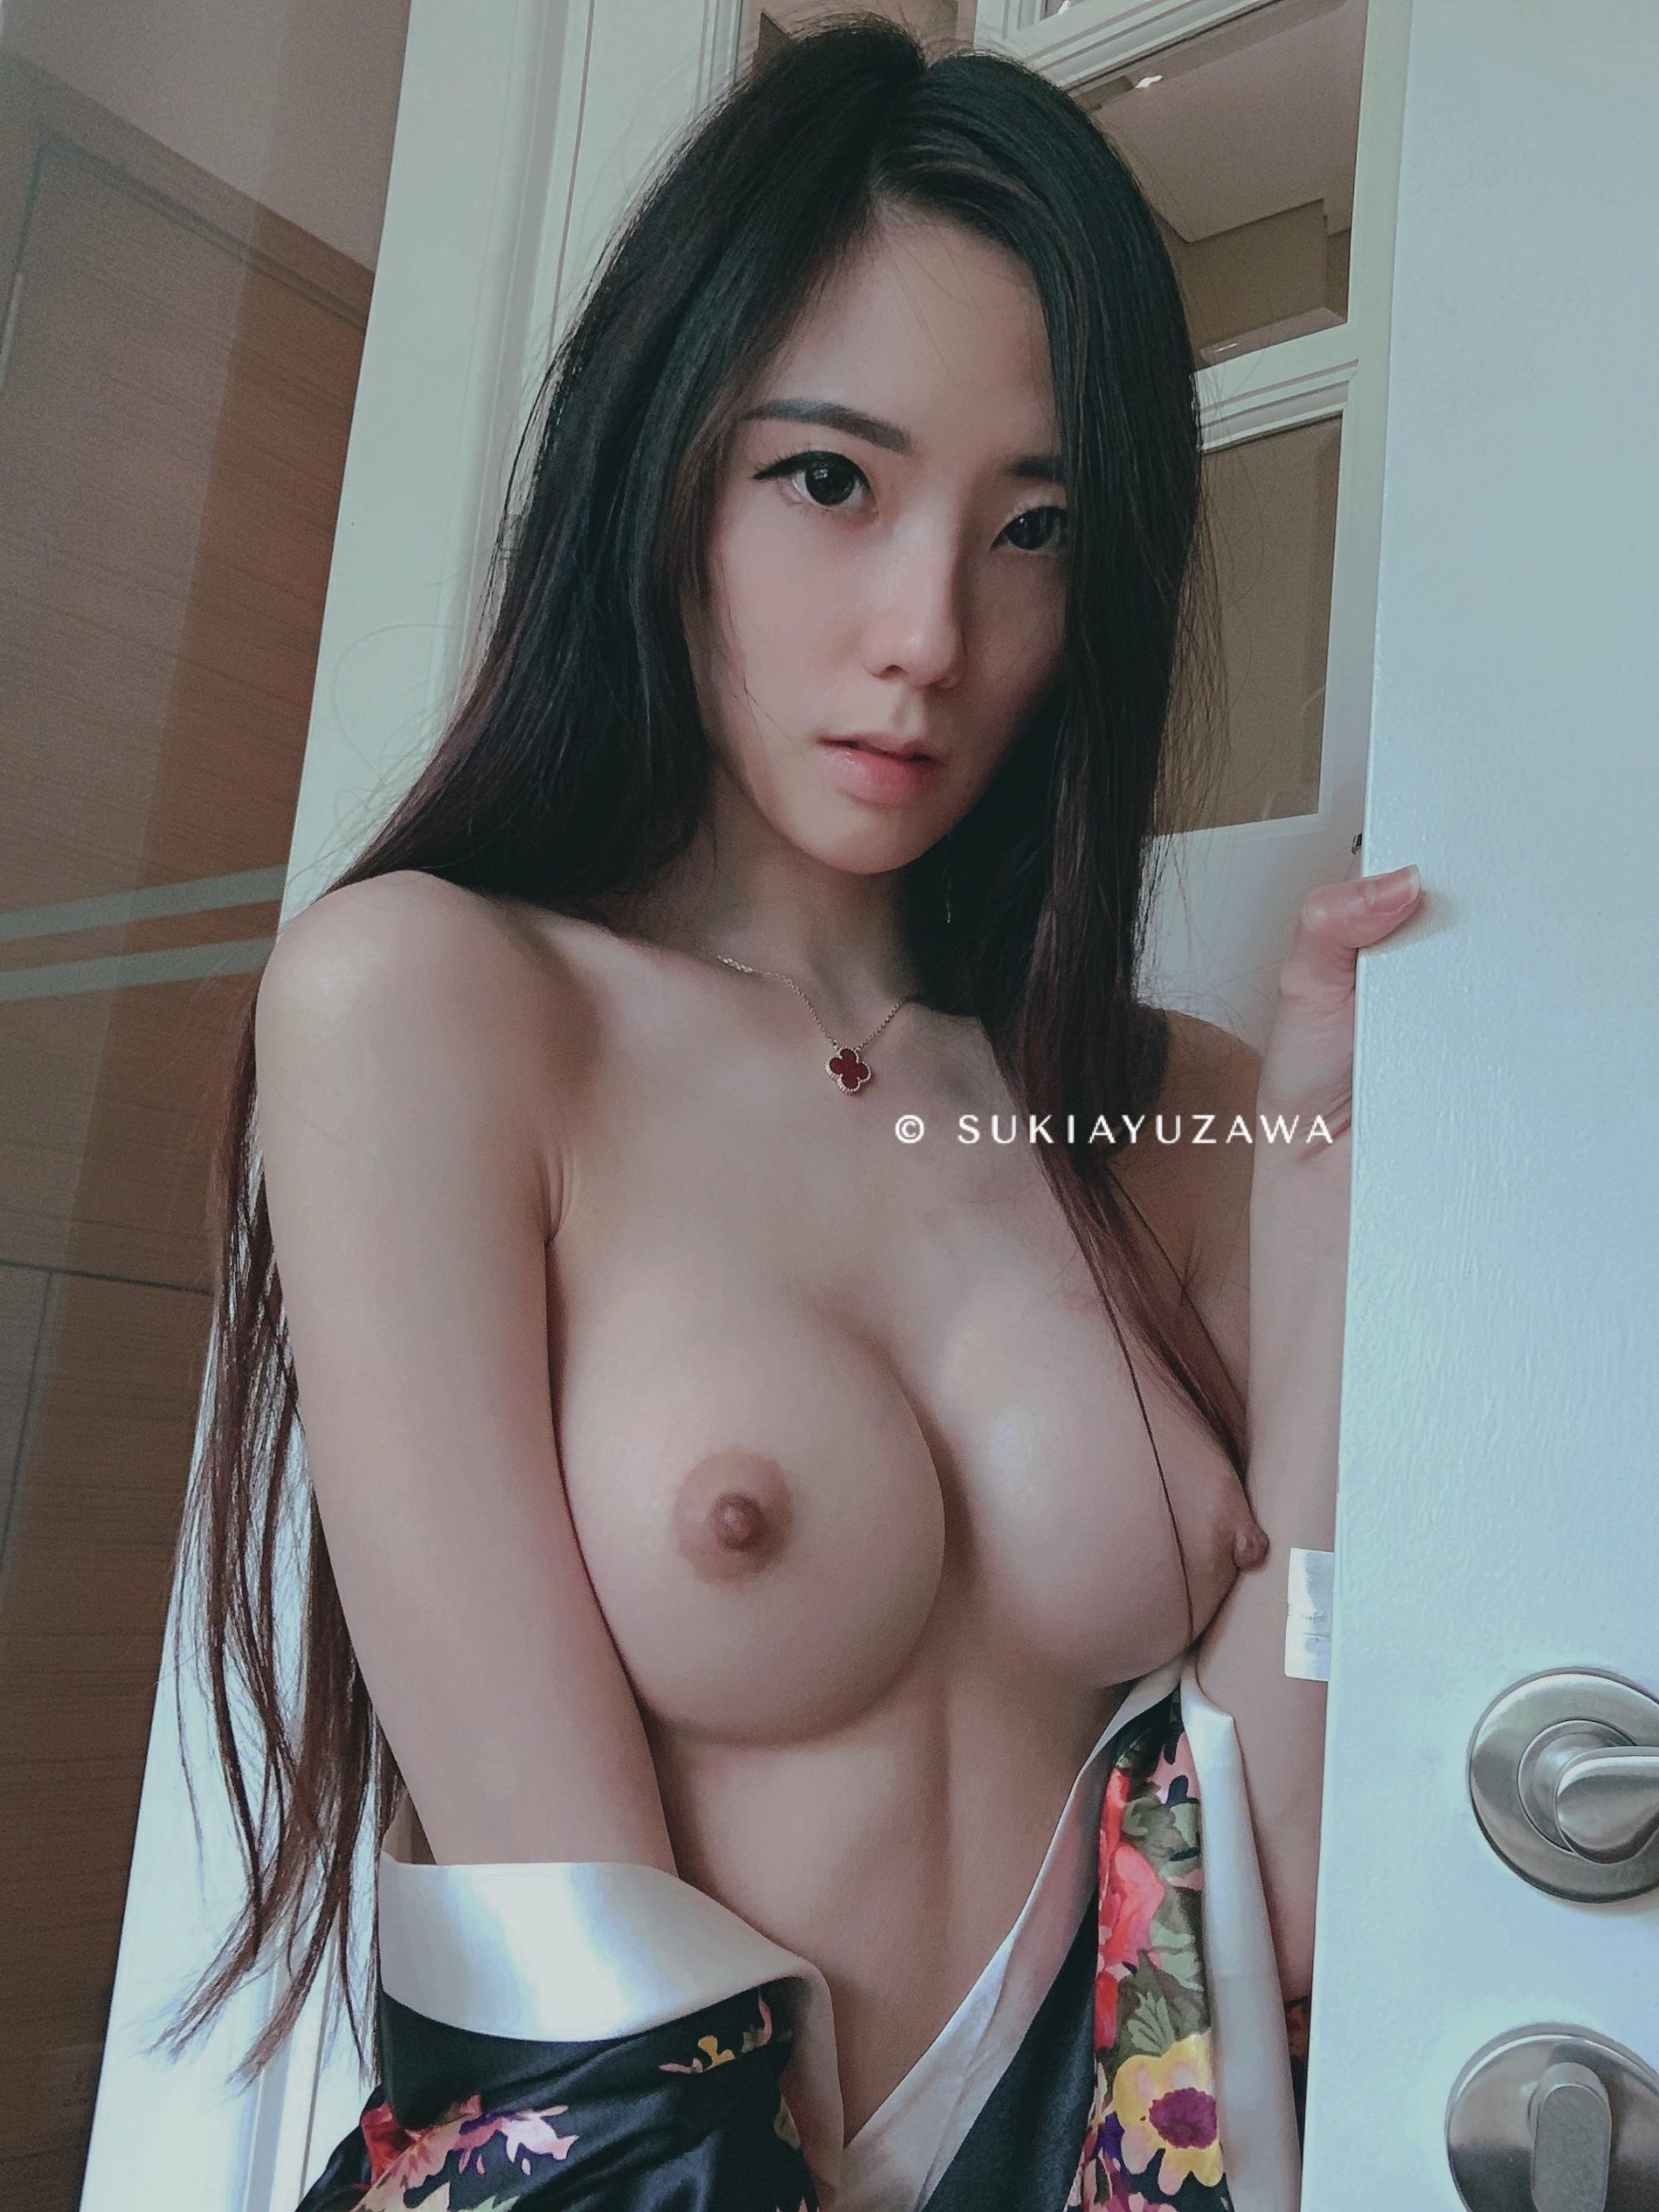 What if u came home to a Japanese girl like me?